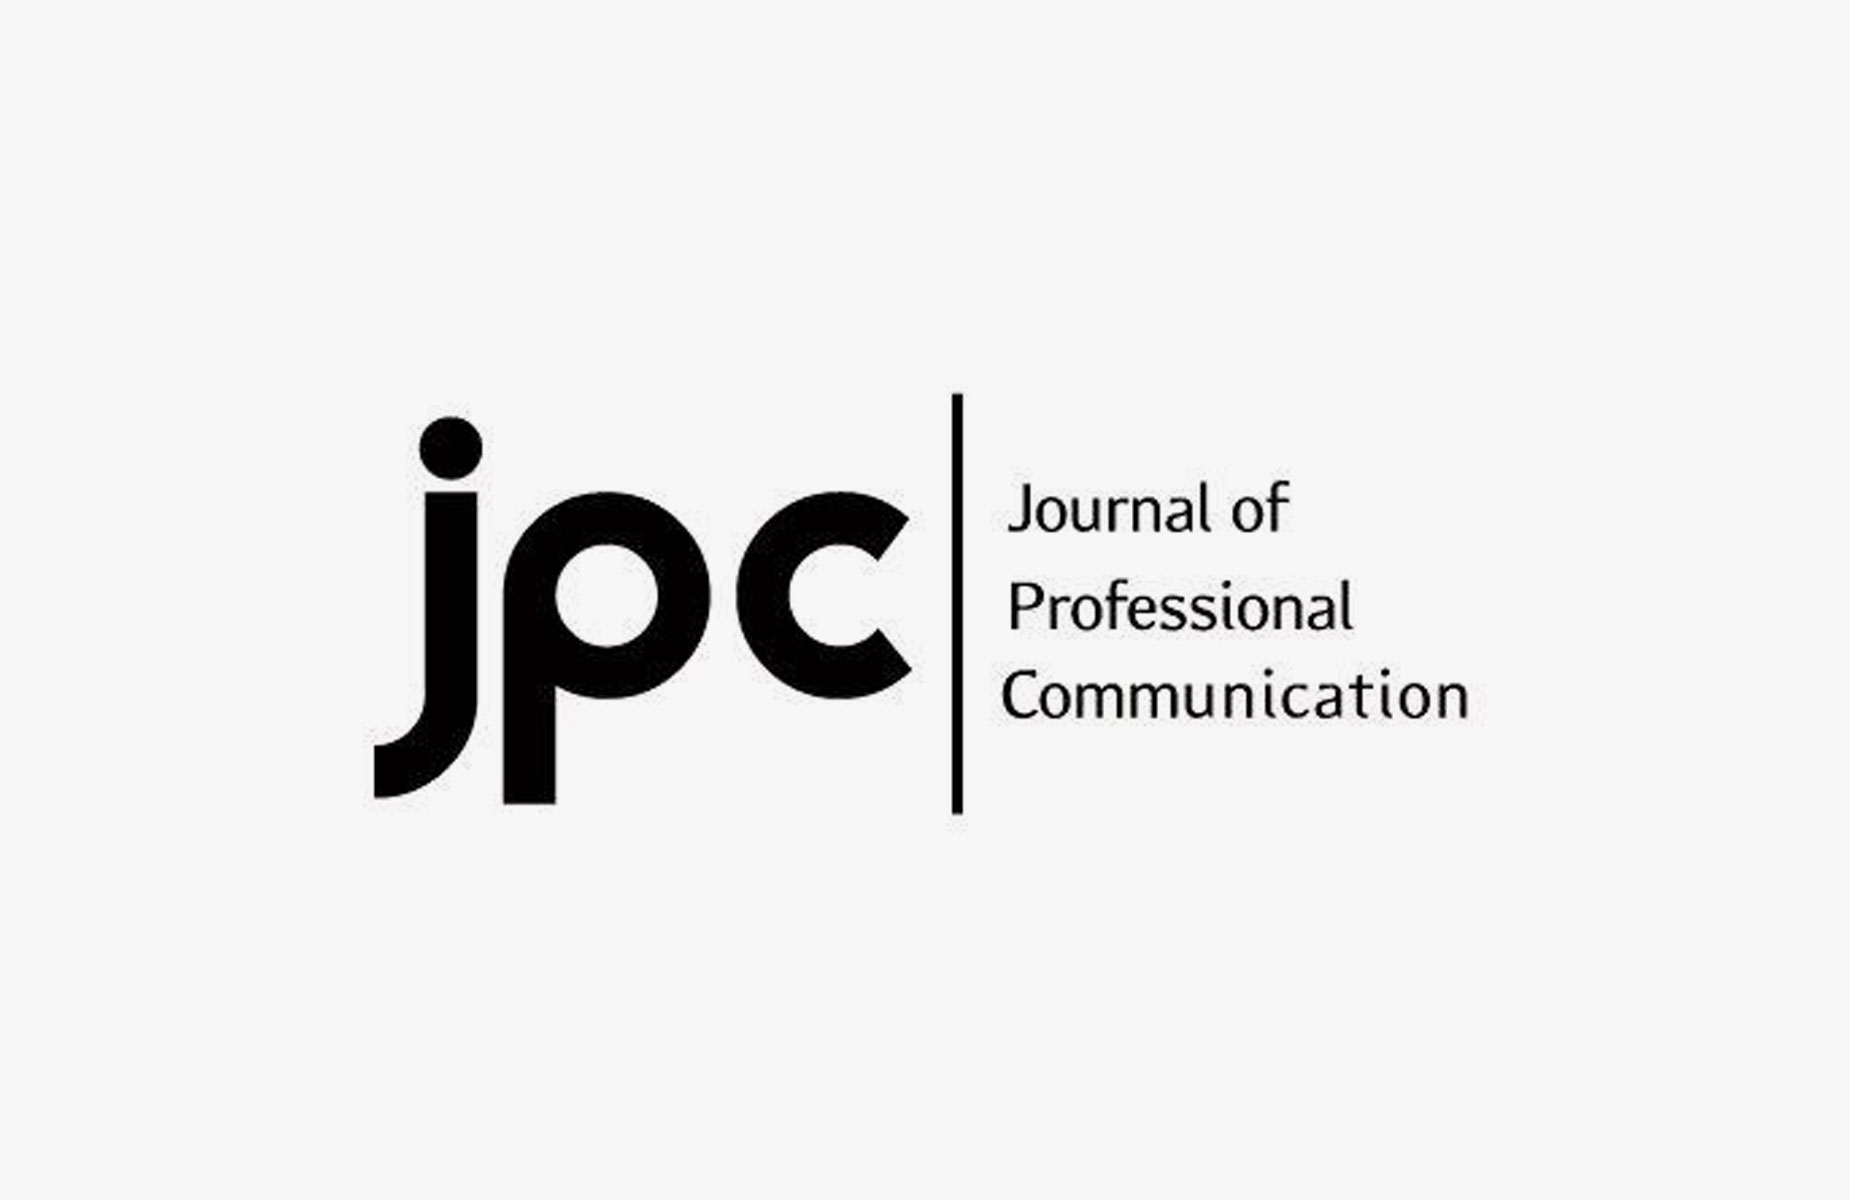 Personality and positive psychology in social media and post-secondary education. - Journal of Professional CommunicationManley, D. (2015)Read More →